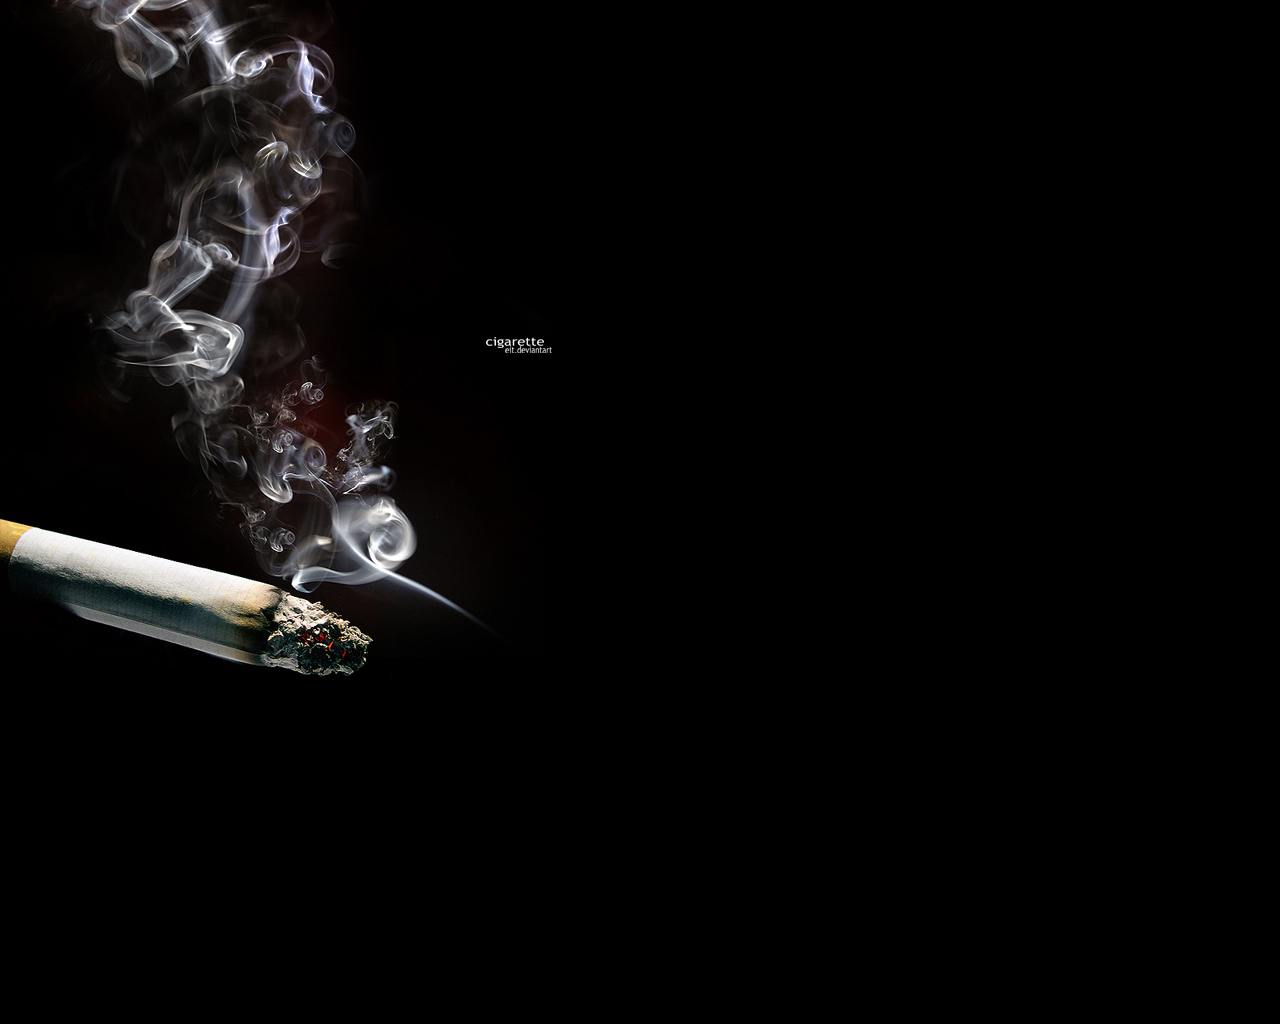 cigarette smoking wallpaper girl cigarette smoking wallpaper cigarette 1280x1024